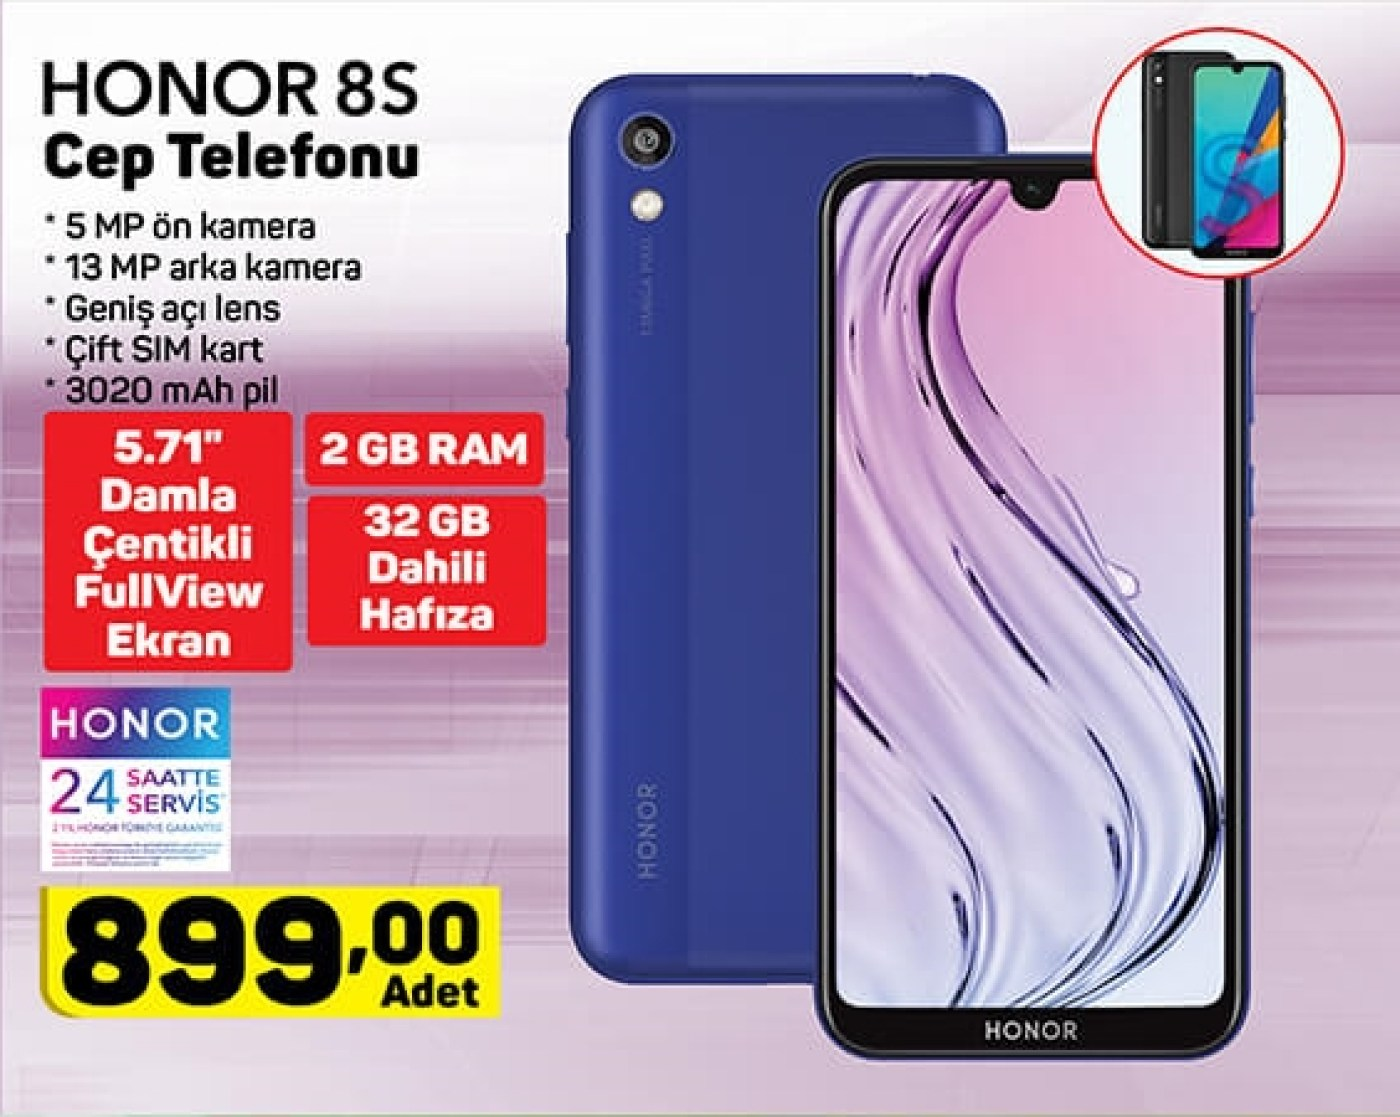 A101 Aktüel 26 Mart: Honor 8S, Smart TV ve Dahası